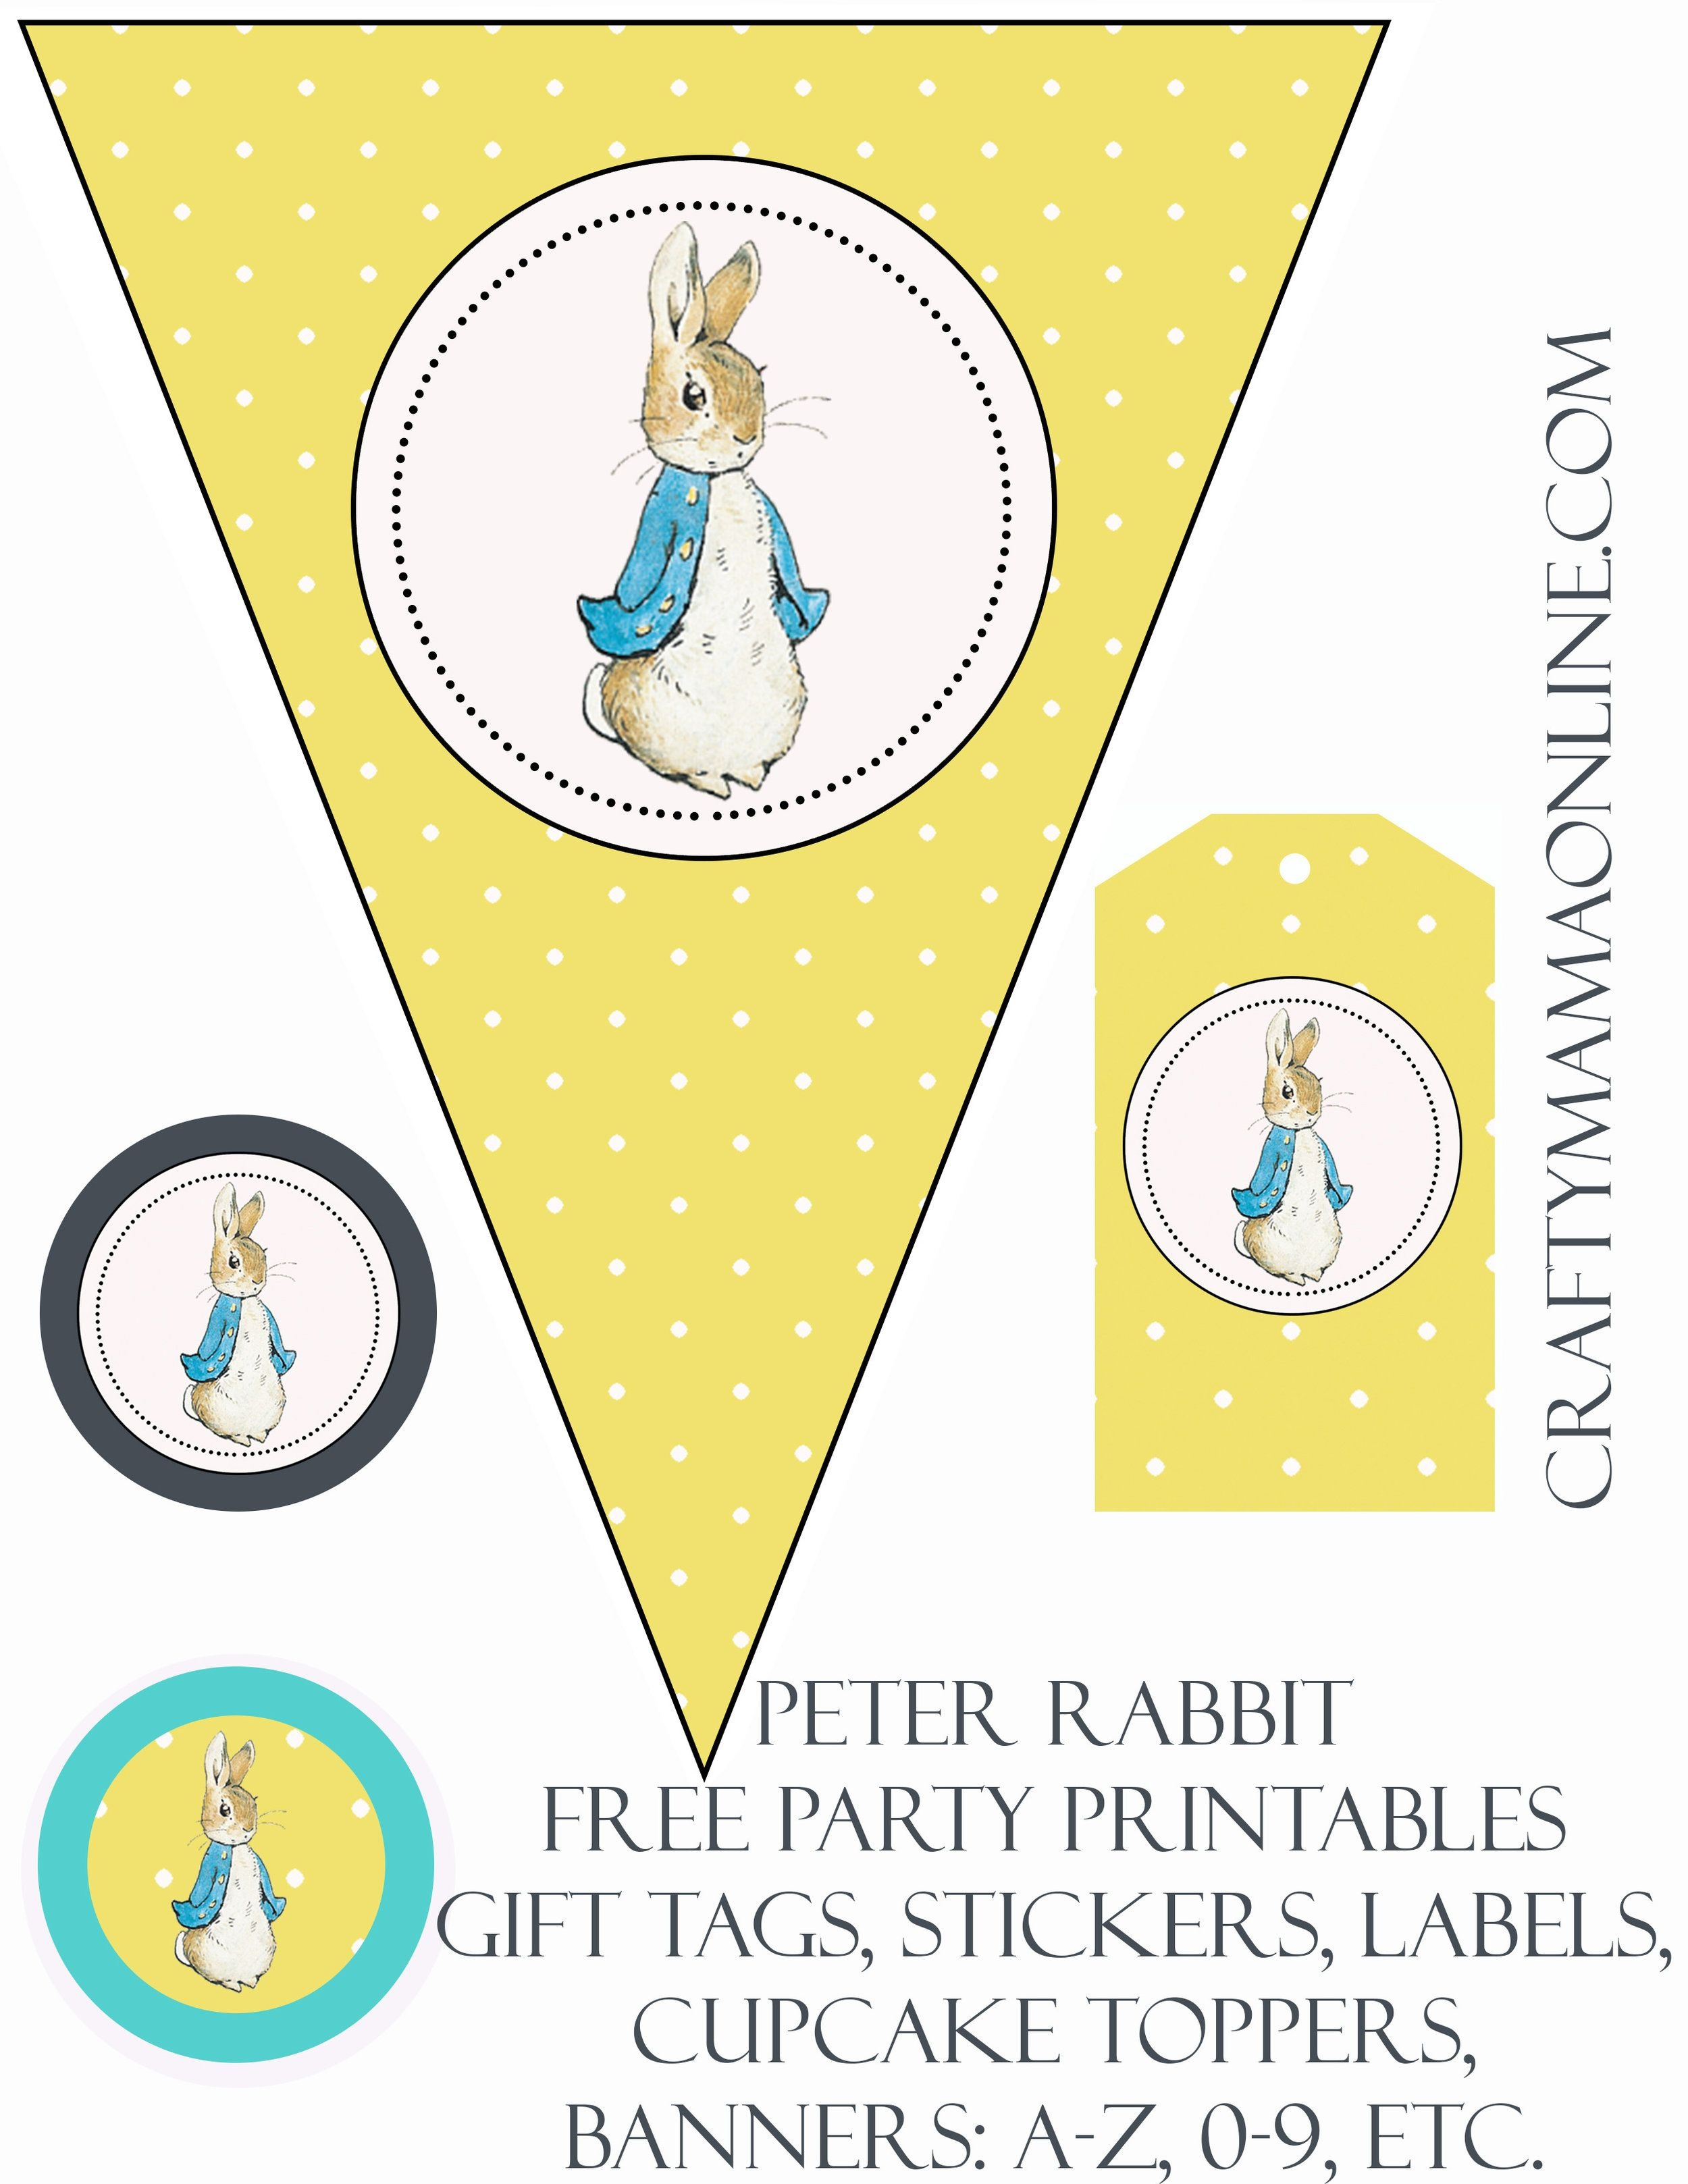 Peter Rabbit Free Party Printables | Prints | Peter Rabbit, Peter - Free Peter Rabbit Party Printables